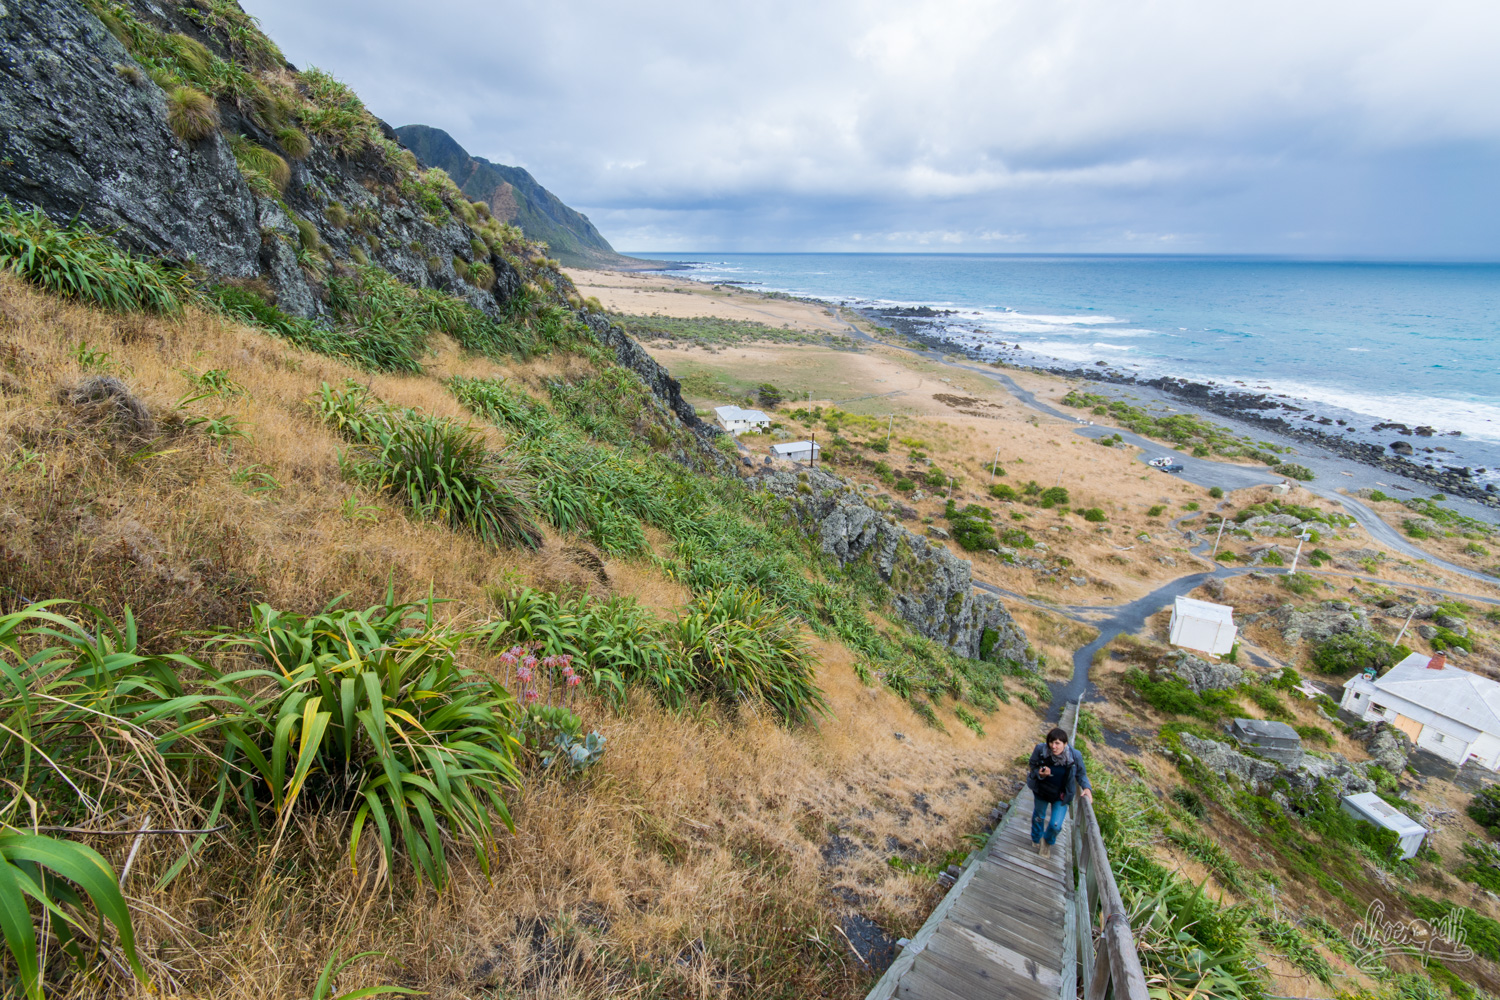 In Cape Palliser